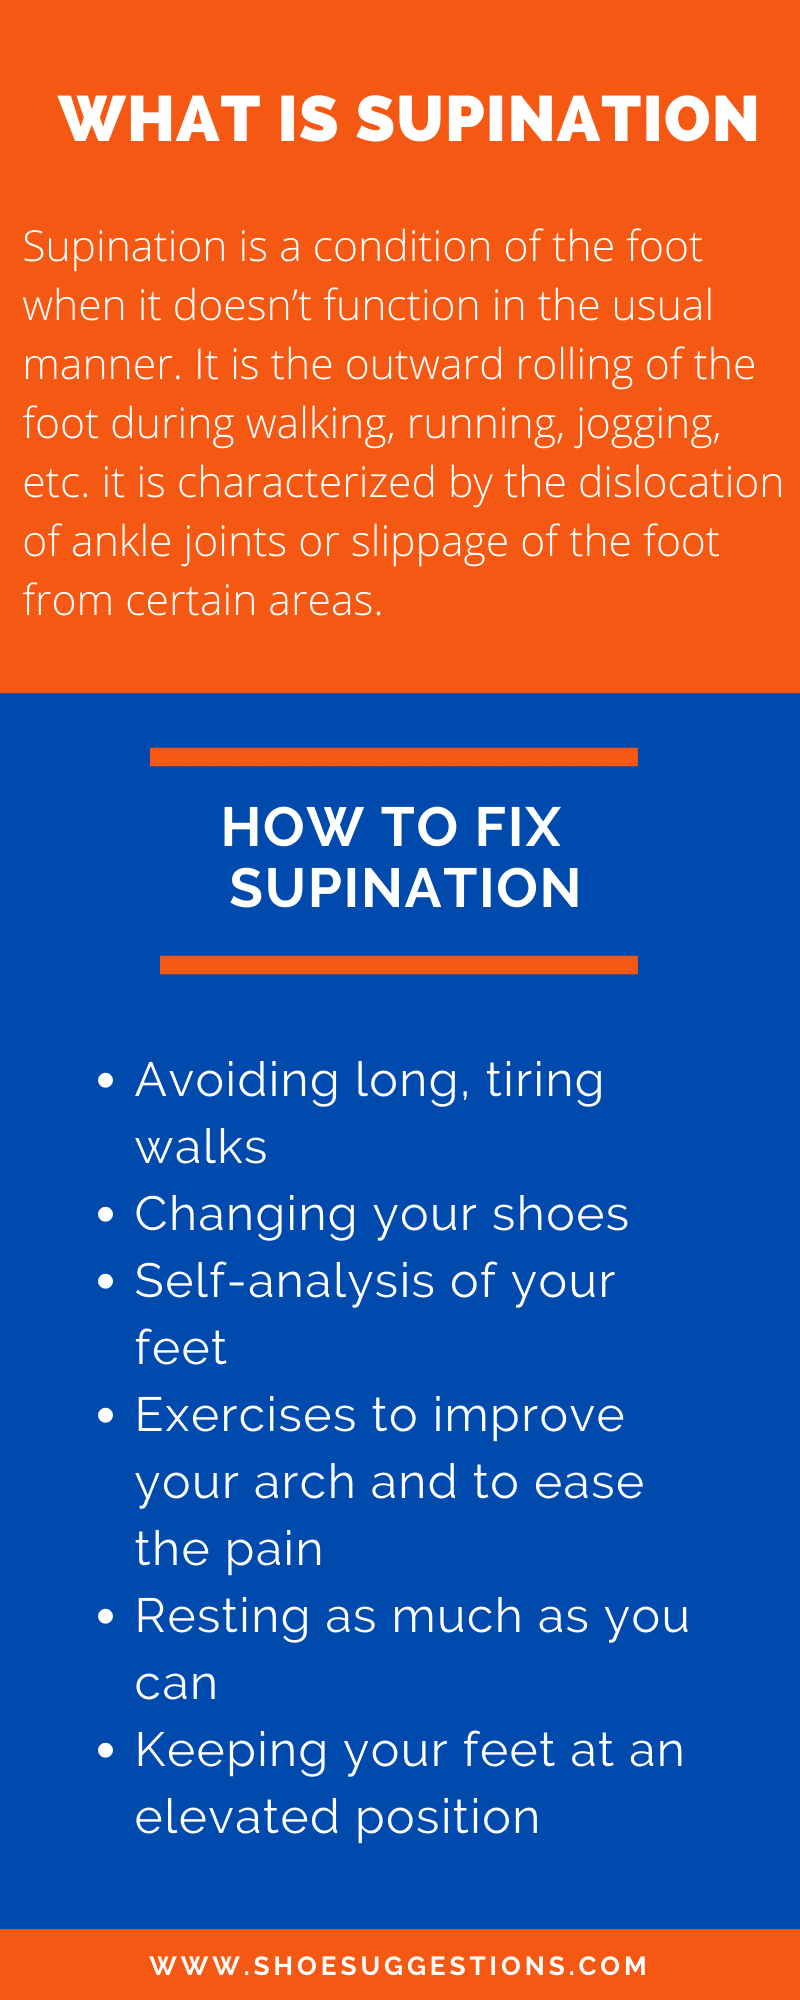 How to fix supination